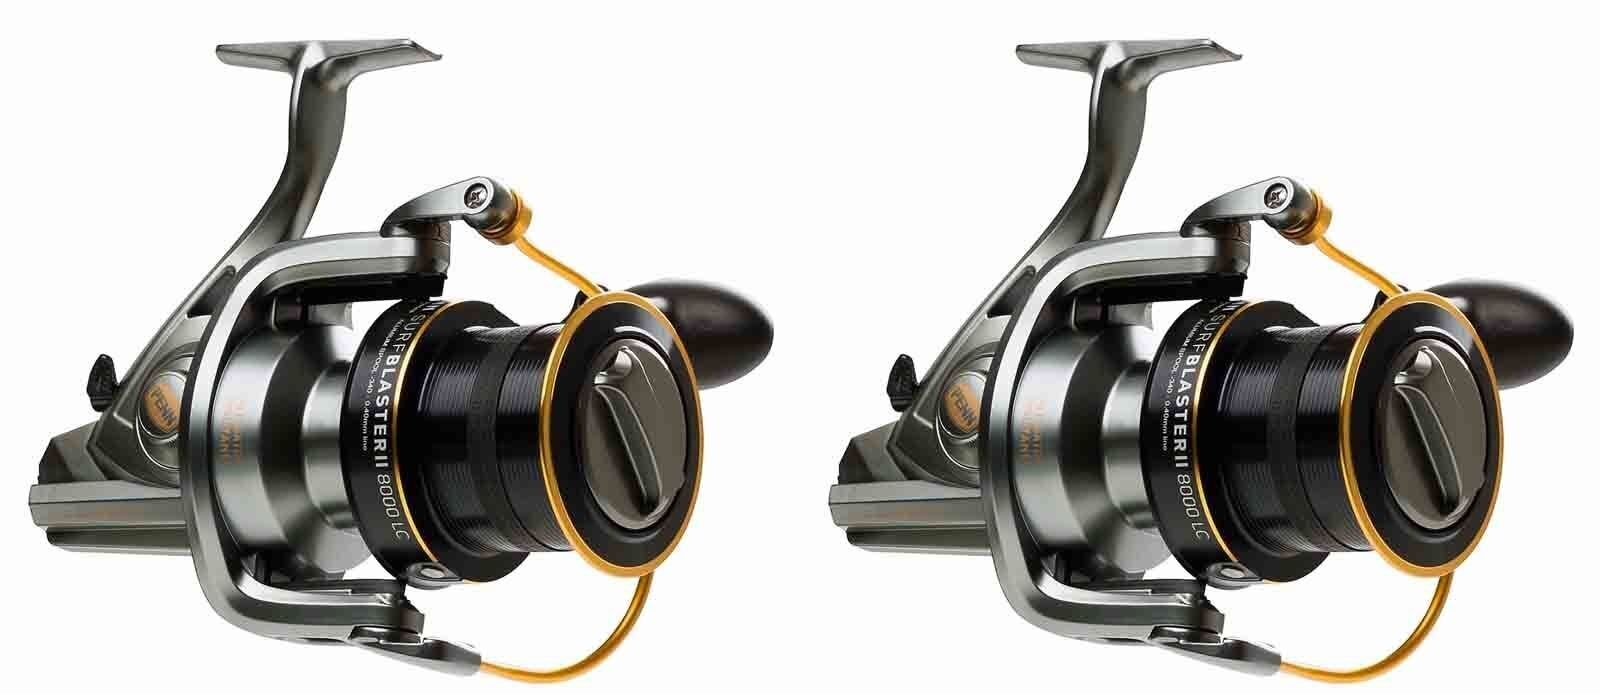 New 2 X Penn Surfblaster 7000 LC Sea Spin Fishing Fixed Spool Reel - 2 X Reels